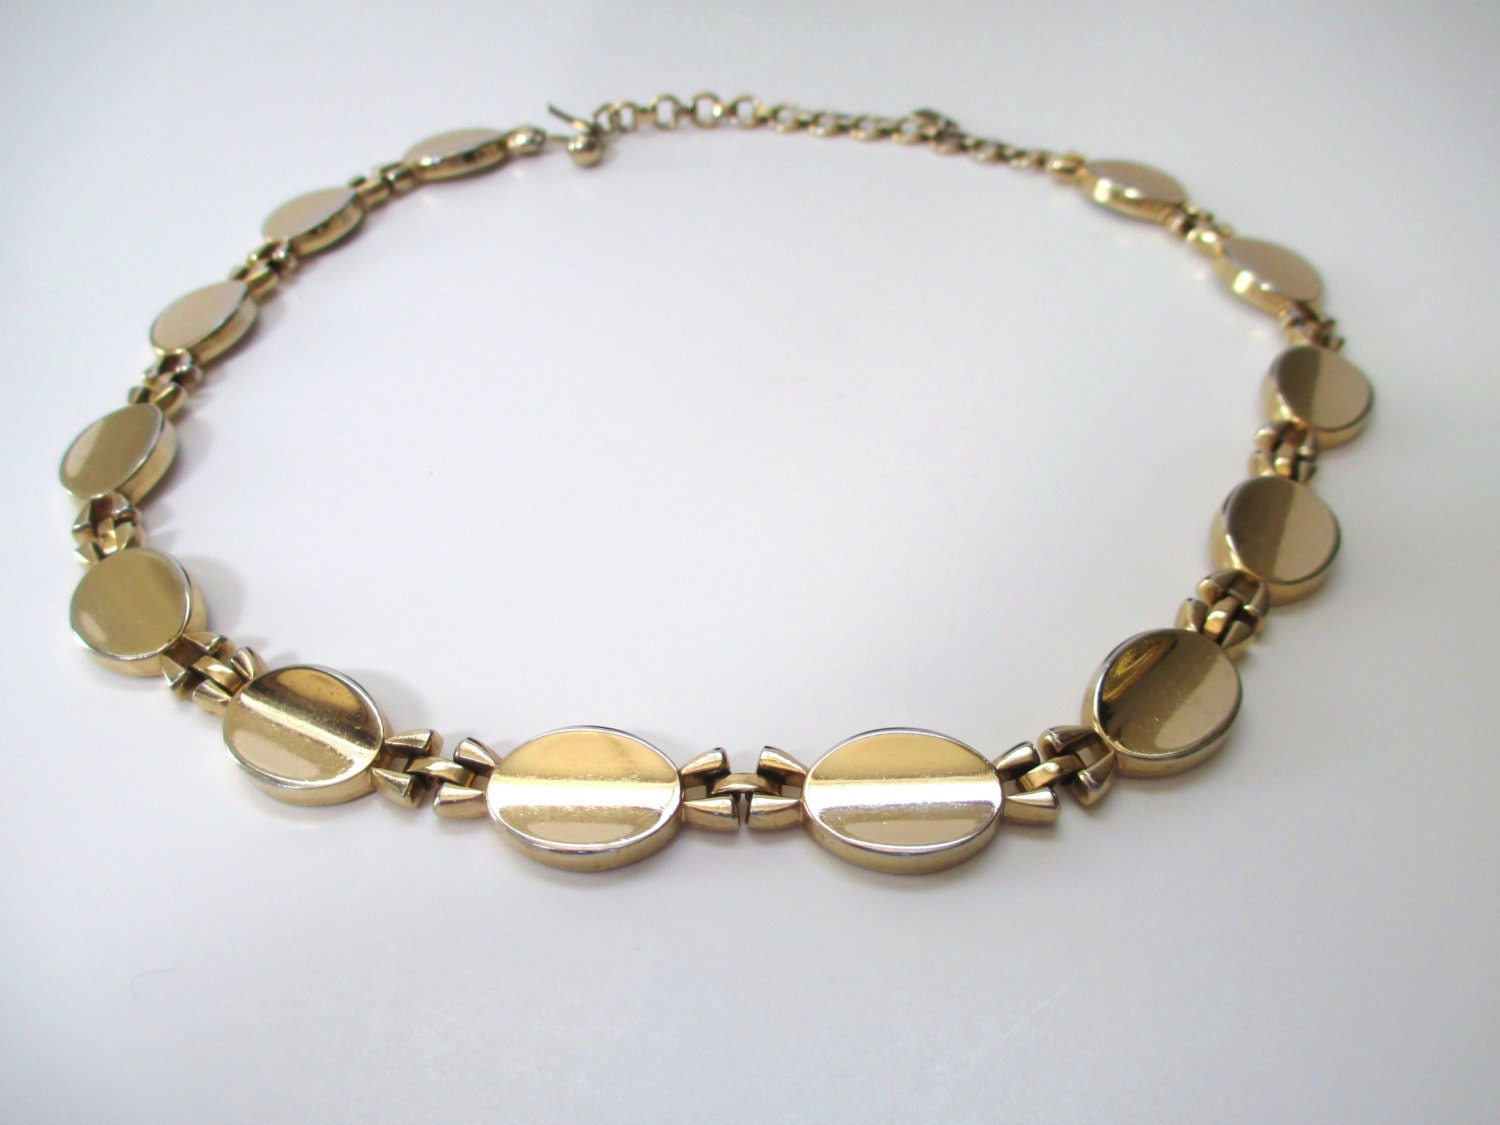 vintage monet choker gold tone link necklace by